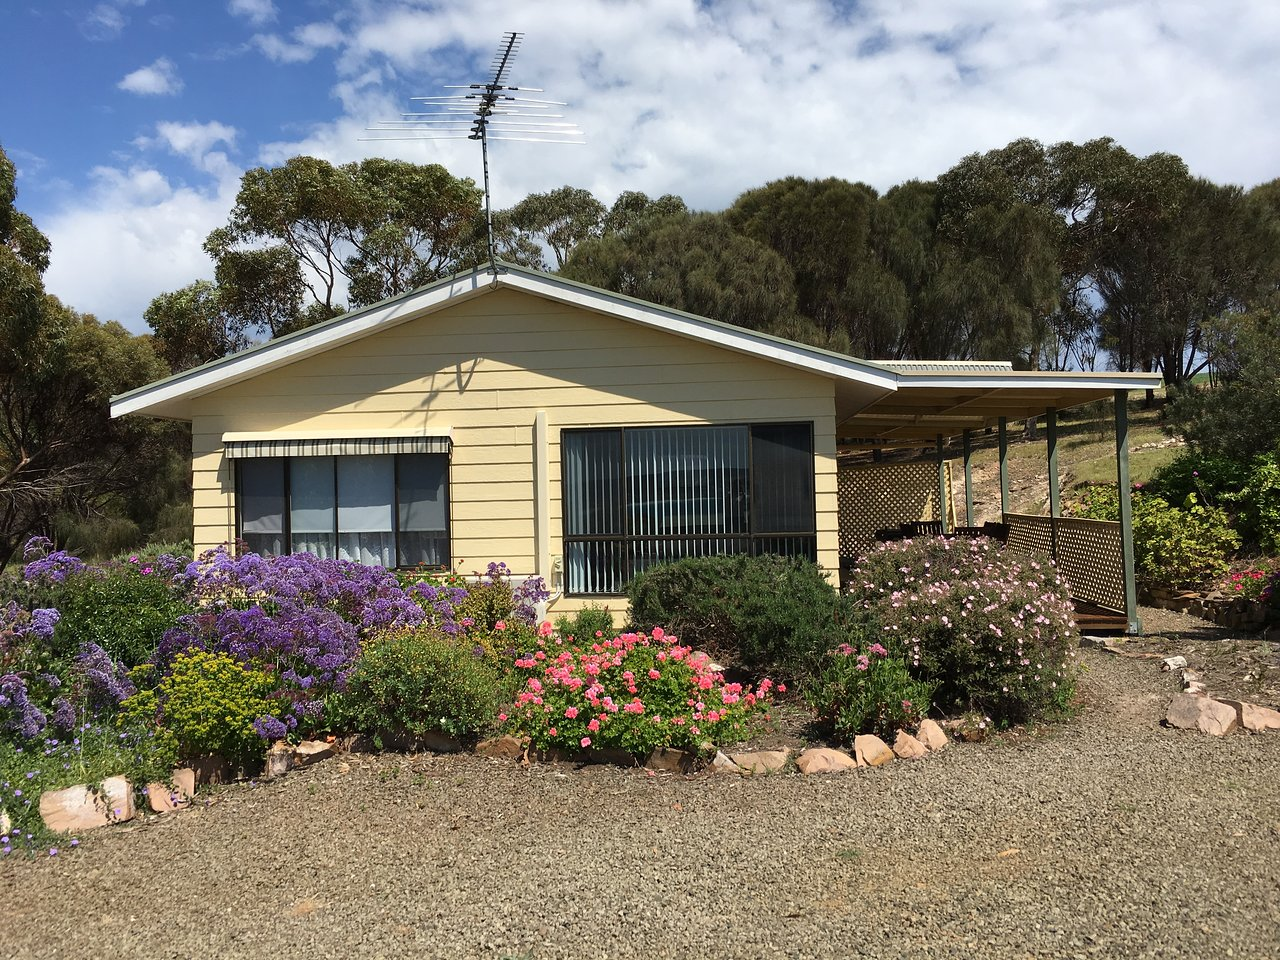 emu bay holiday homes updated 2019 prices campground reviews rh tripadvisor com